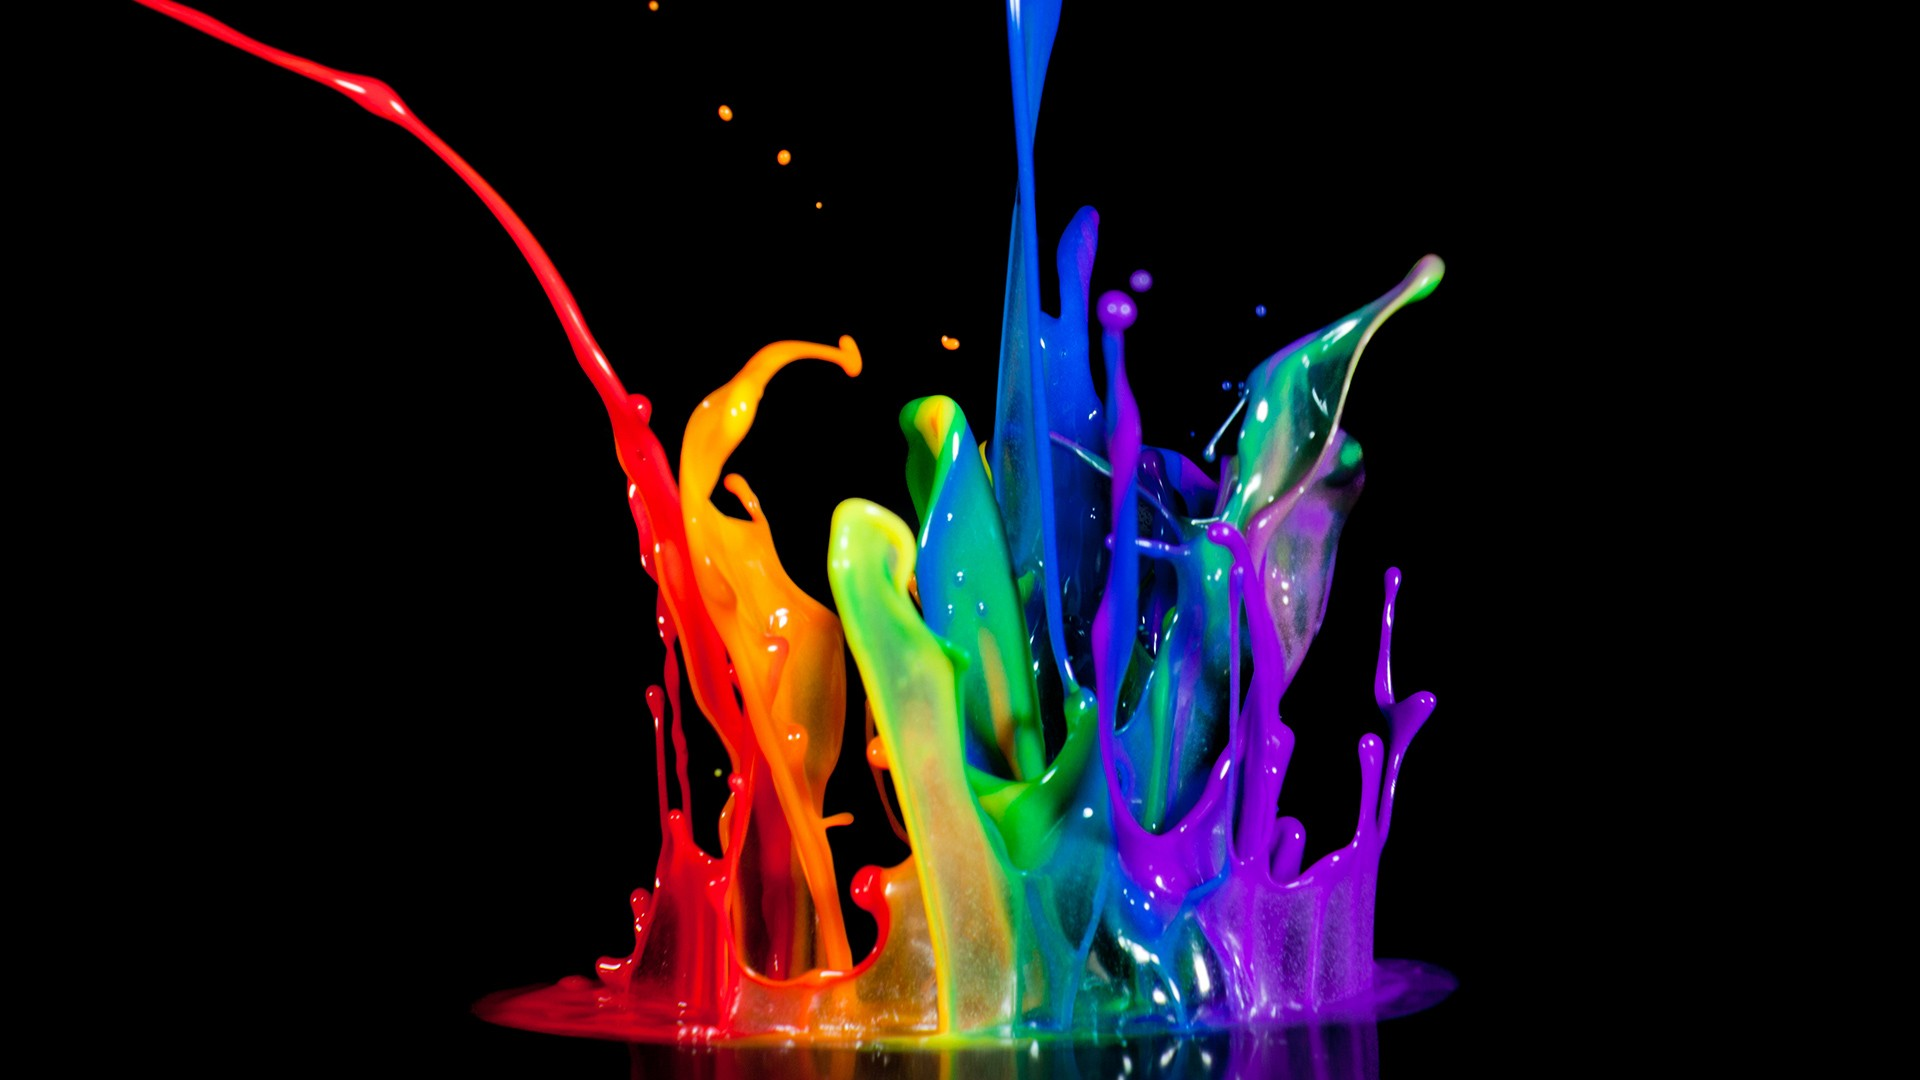 Paint Wallpaper Hd